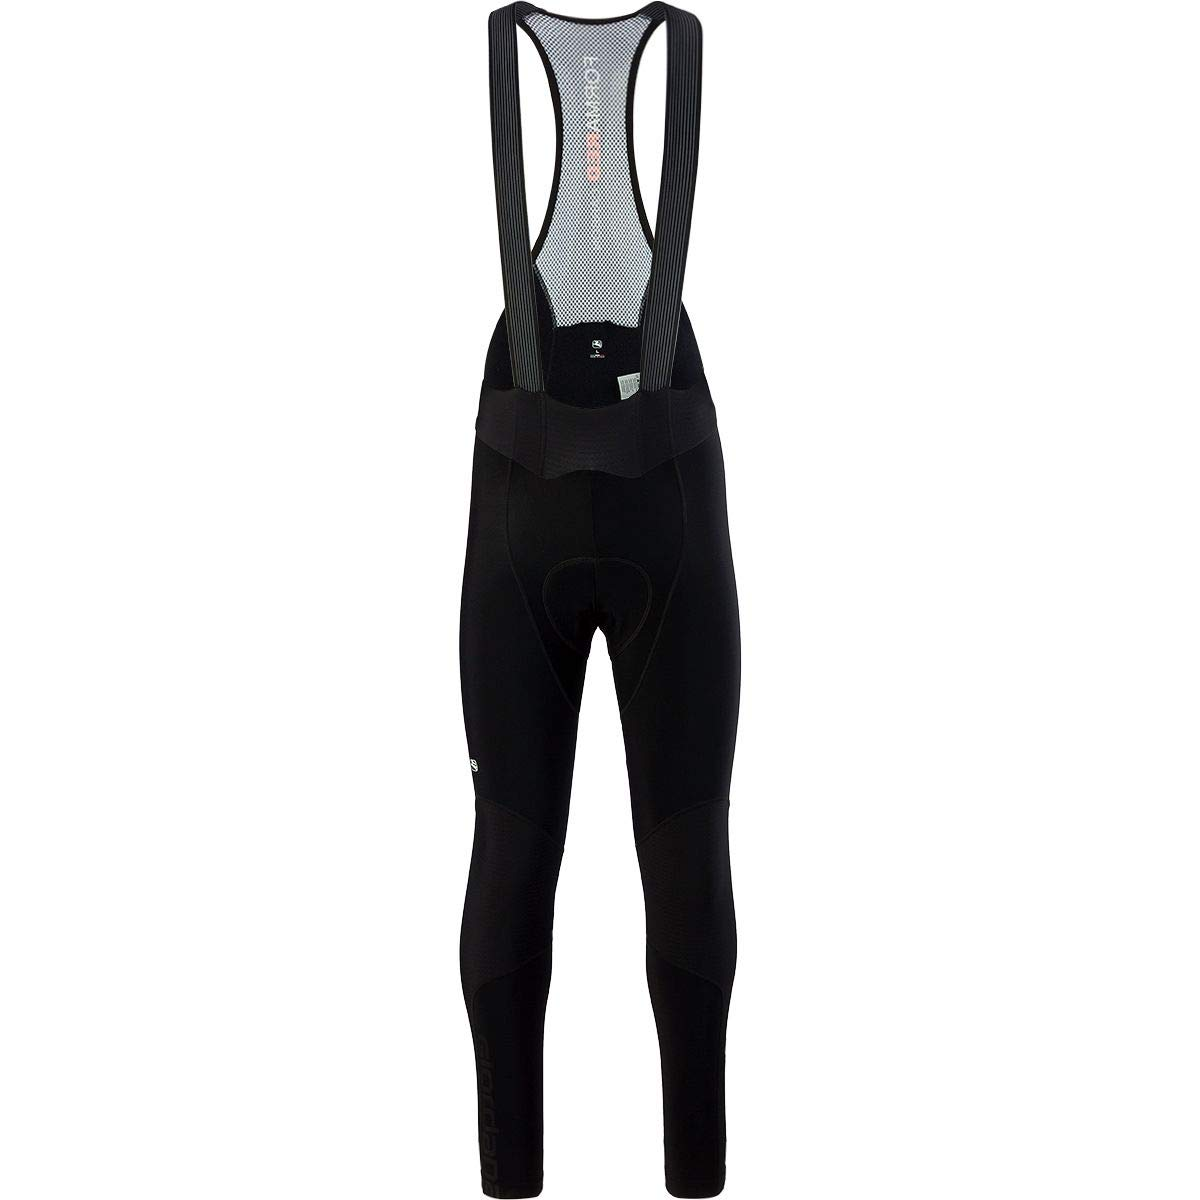 Giordana FR-C Pro Bib Tight - Men's Black, S